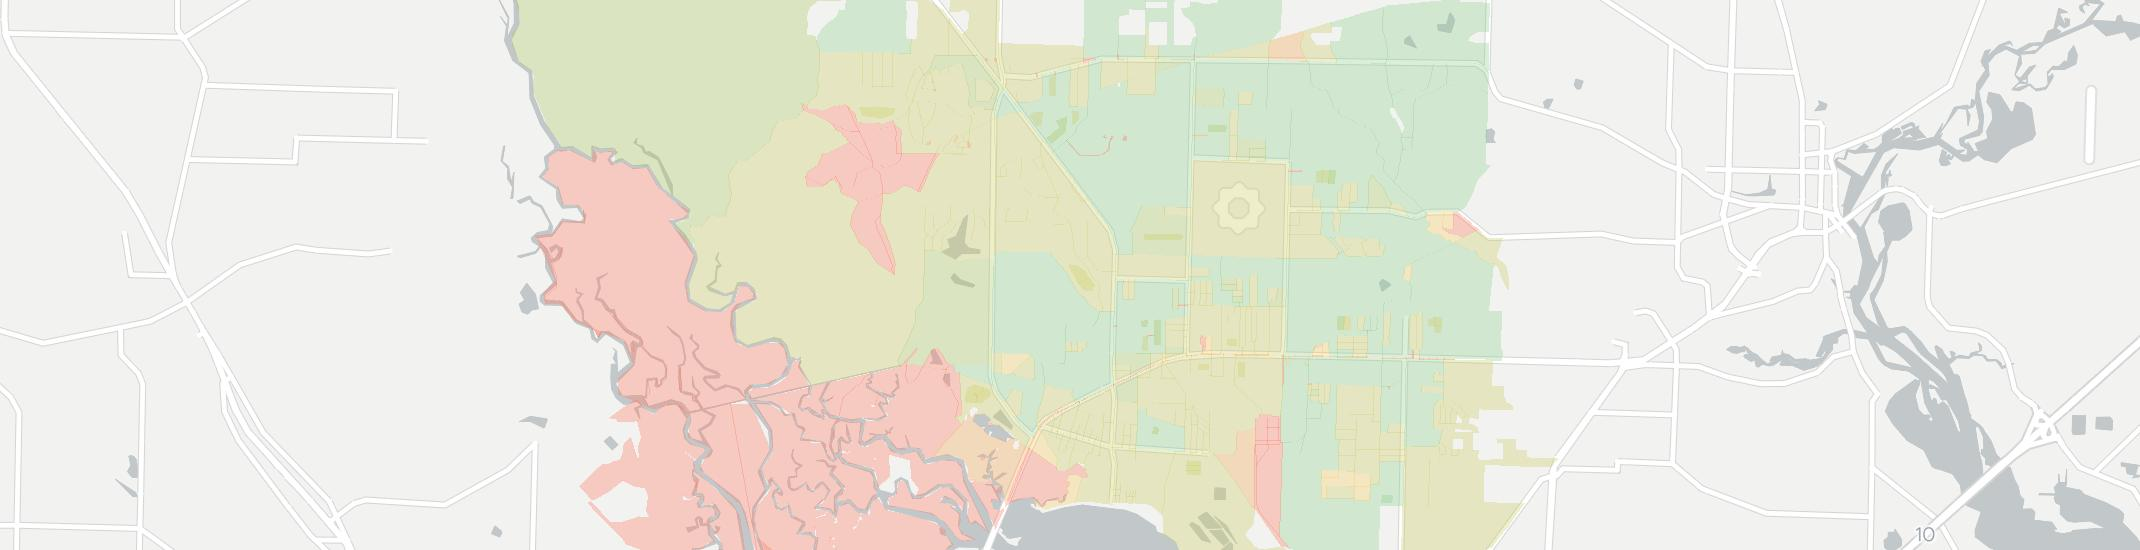 Pace Florida Map.Internet Providers In Pace Fl Compare 13 Providers